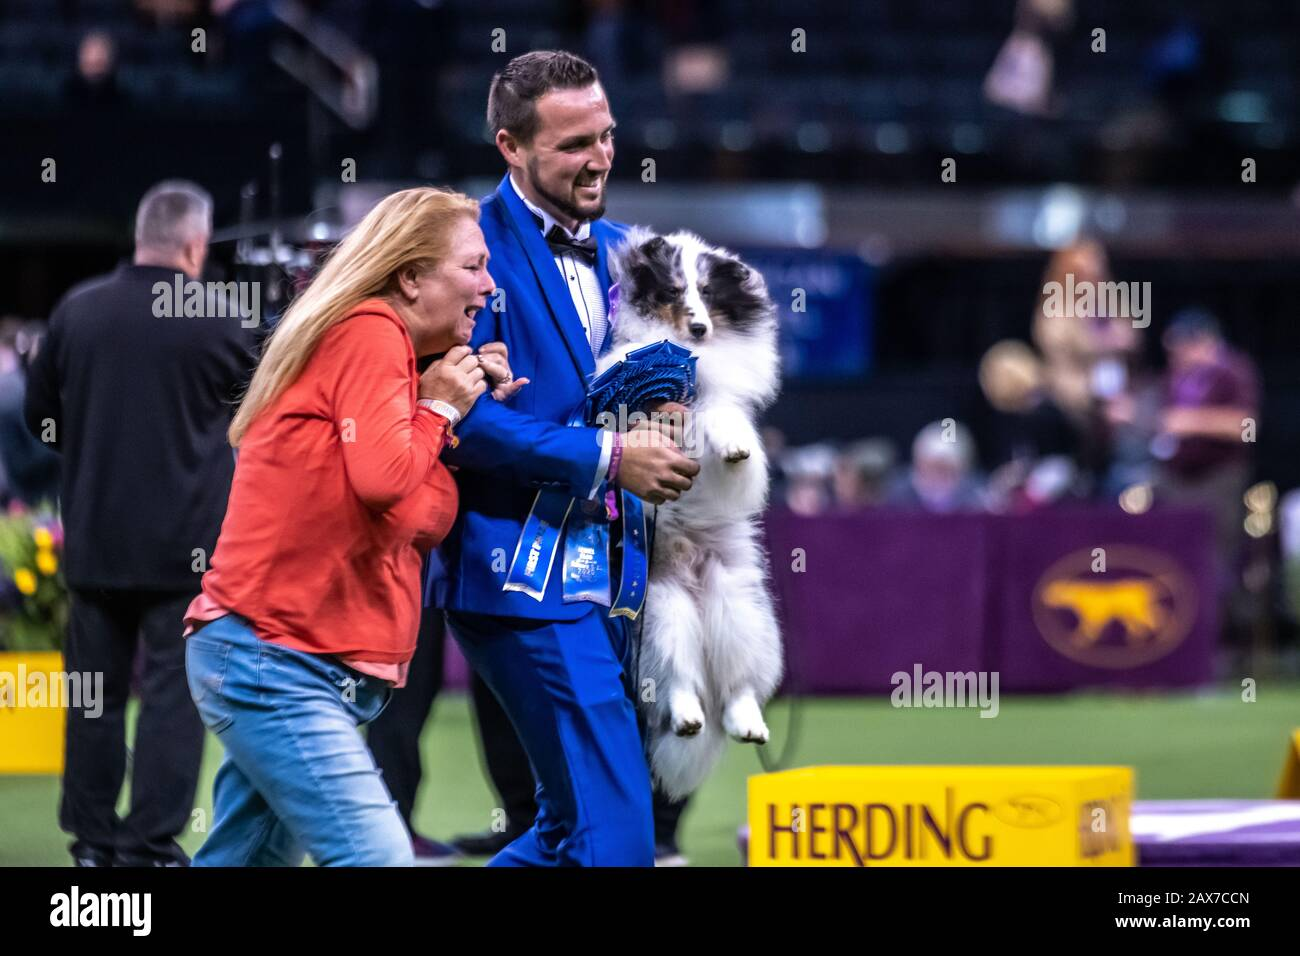 New York, USA. 10th Feb, 2020. Handler and co-owner Tyler Crady holds Conrad the Shetland sheepdog as his mother Erin Tyler reaches to congratulate him after winning the Herding group category at the 144th Westminster Kennel Club Dog show in New York city's Madison Square Garden. Conrad's formal competition name is Syringa-Akadia The Corsair.  Credit: Enrique Shore/Alamy Live News Stock Photo